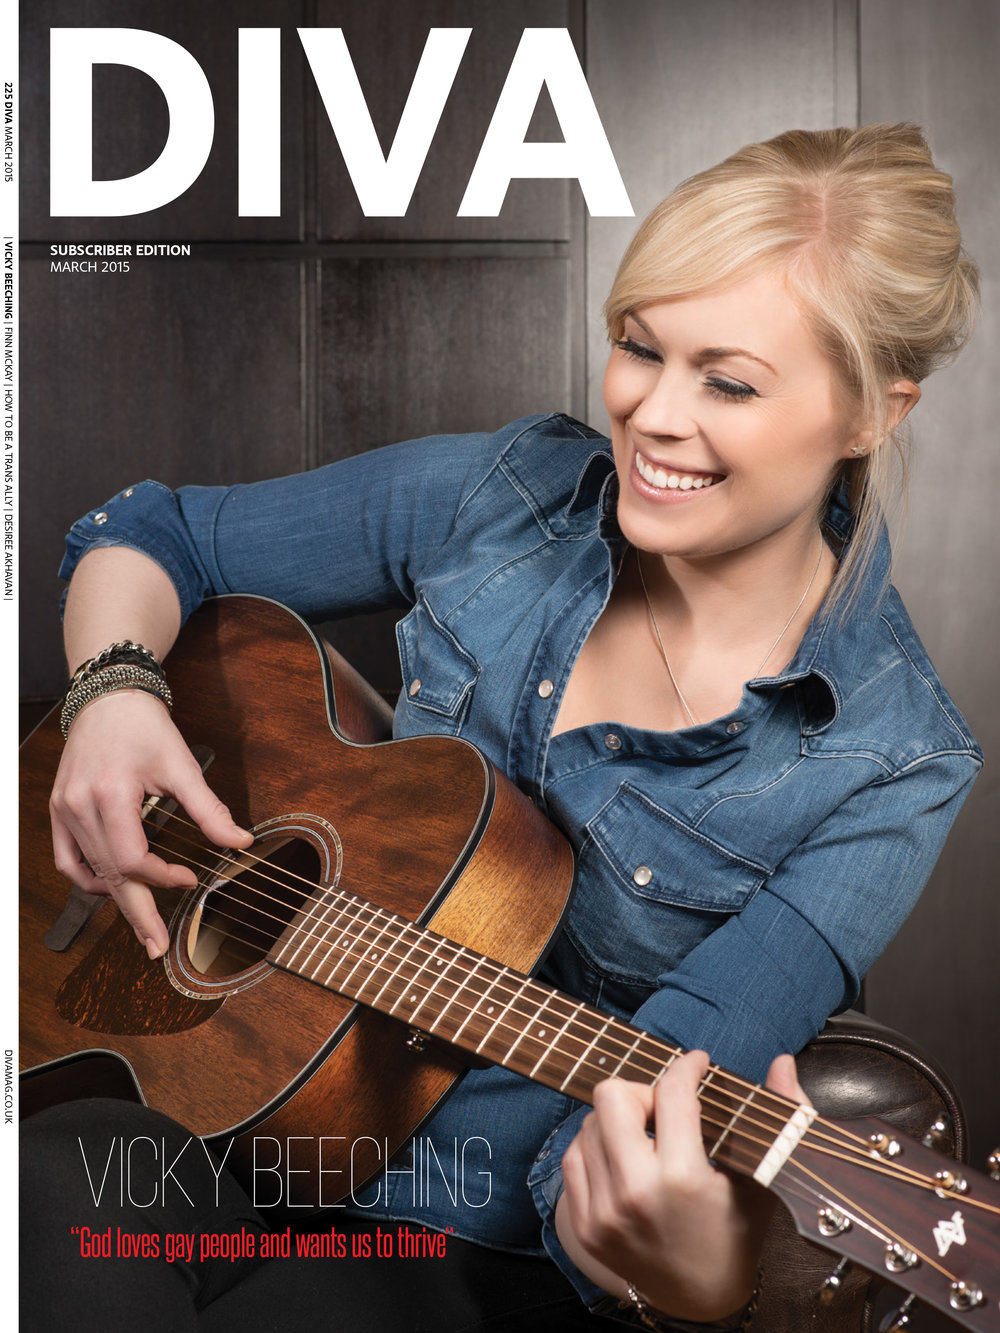 Editorial for DIVA Magazine (Subscriber Cover)